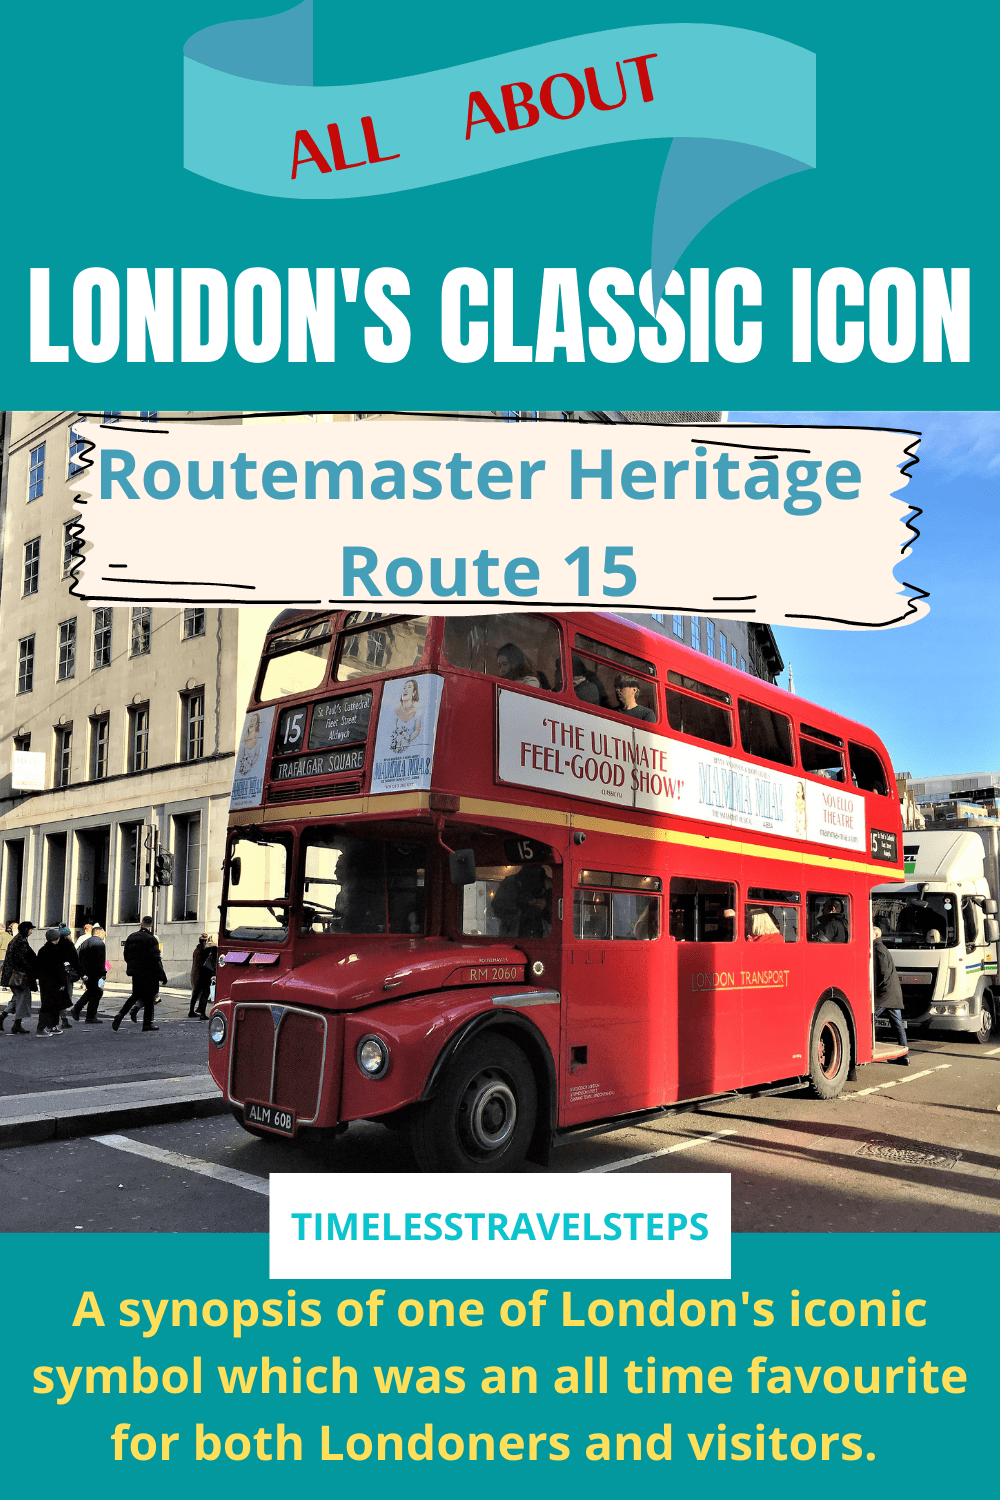 Routemaster Heritage Route 15 is a British iconic heritage on London roads. Read all about this iconic heritage of london even though it is no longer in service. Visit London | London's heritage via @GGeorgina_mytimelessfootsteps/